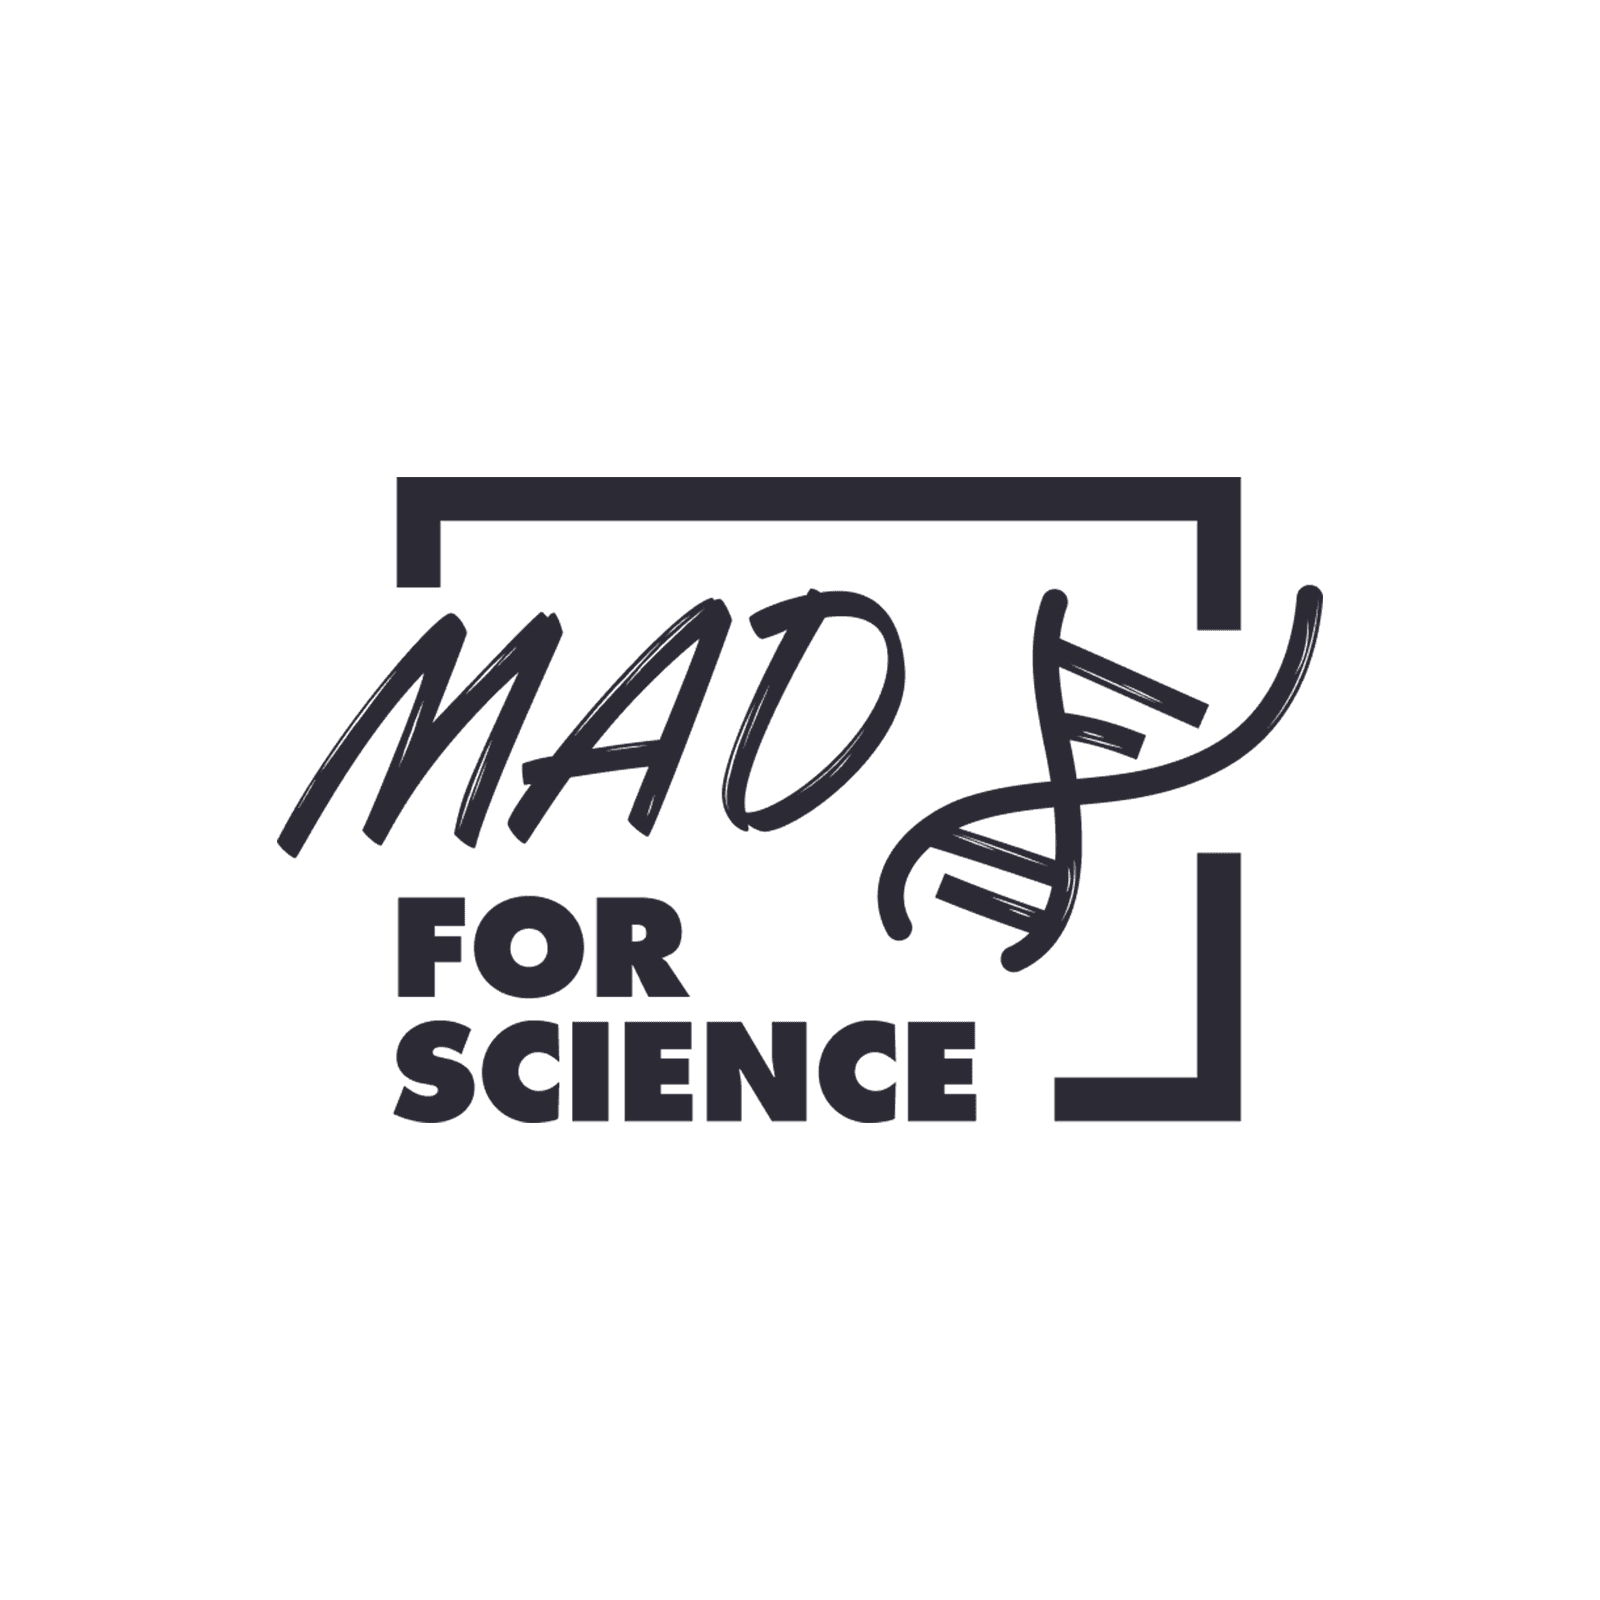 mad for science brand